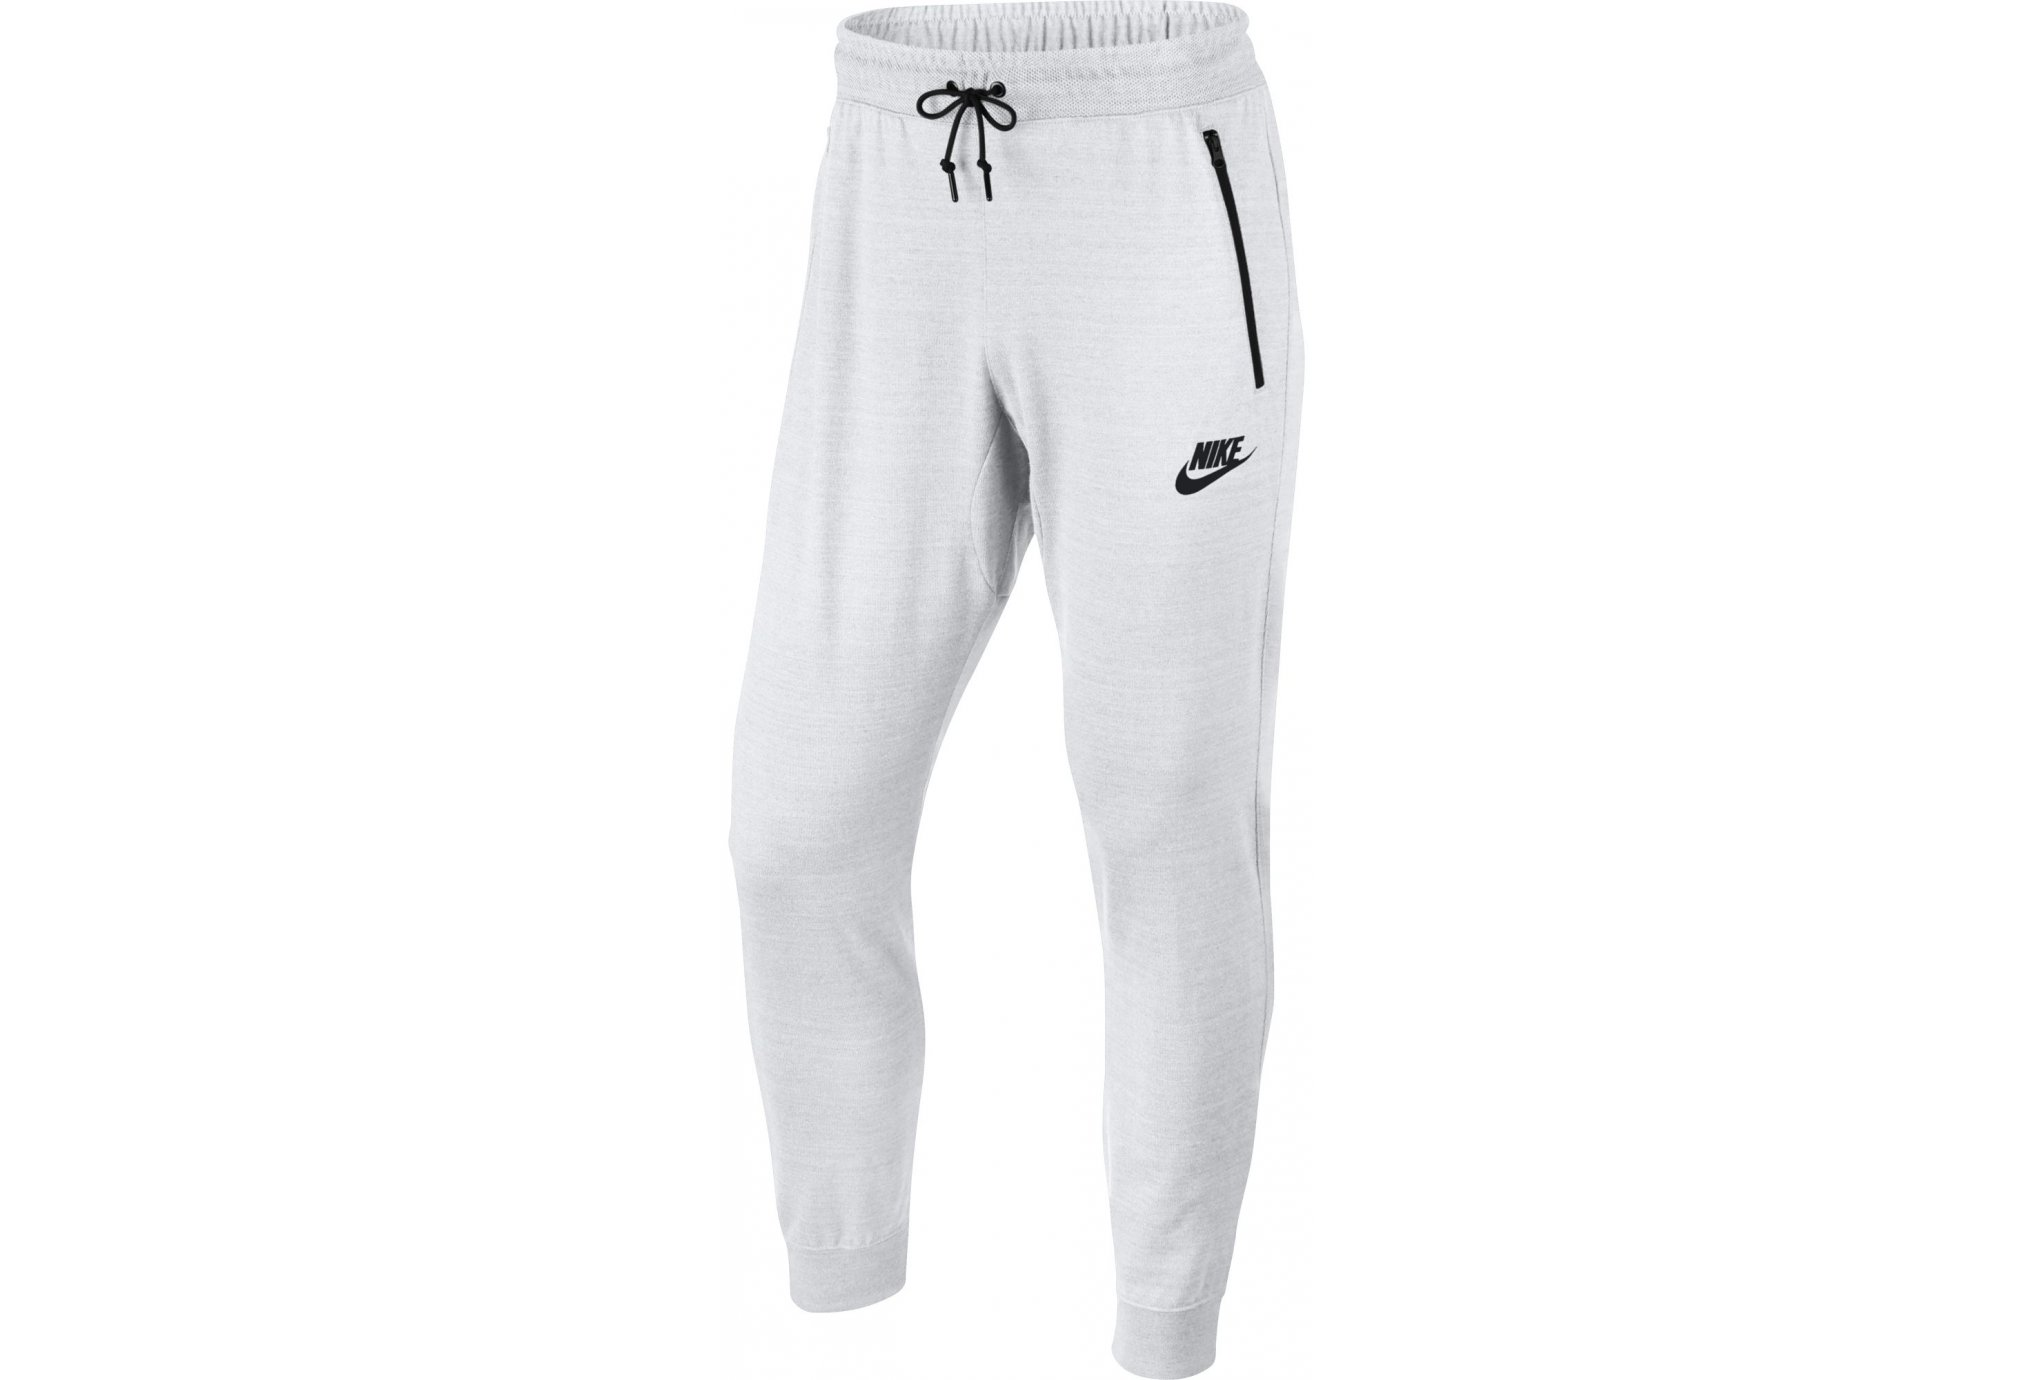 Nike Advance 15 Knit M vêtement running homme